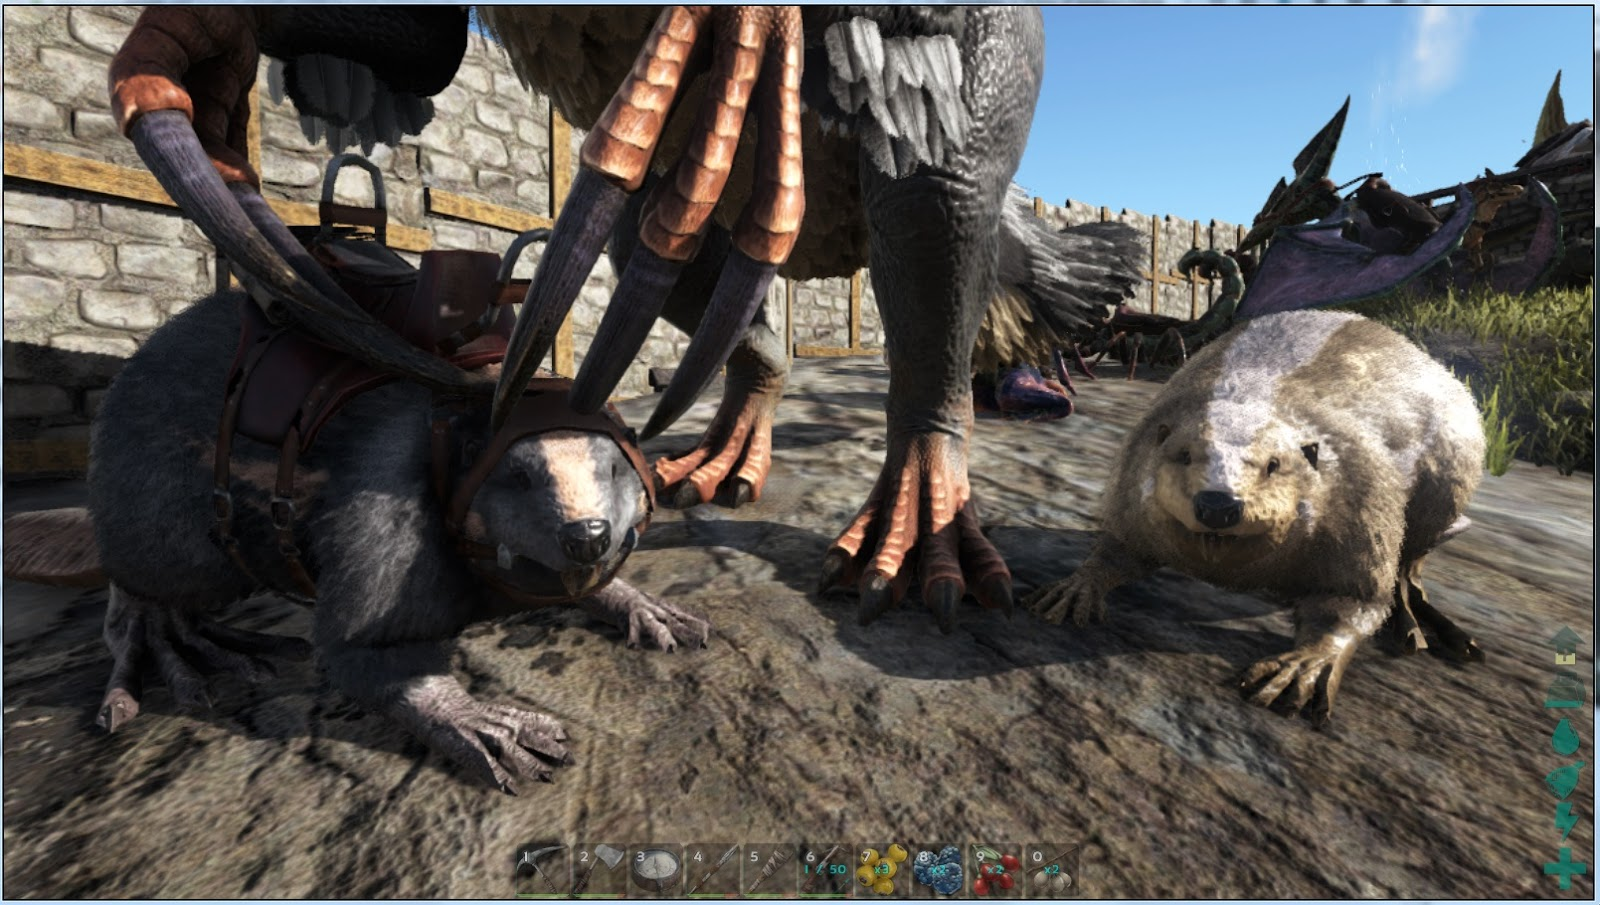 Sl Newser Other Grids Mmos And Games Latest Misadventures In Ark Survival Evolved There are plentiful of caves found in the world of ark: ark survival evolved